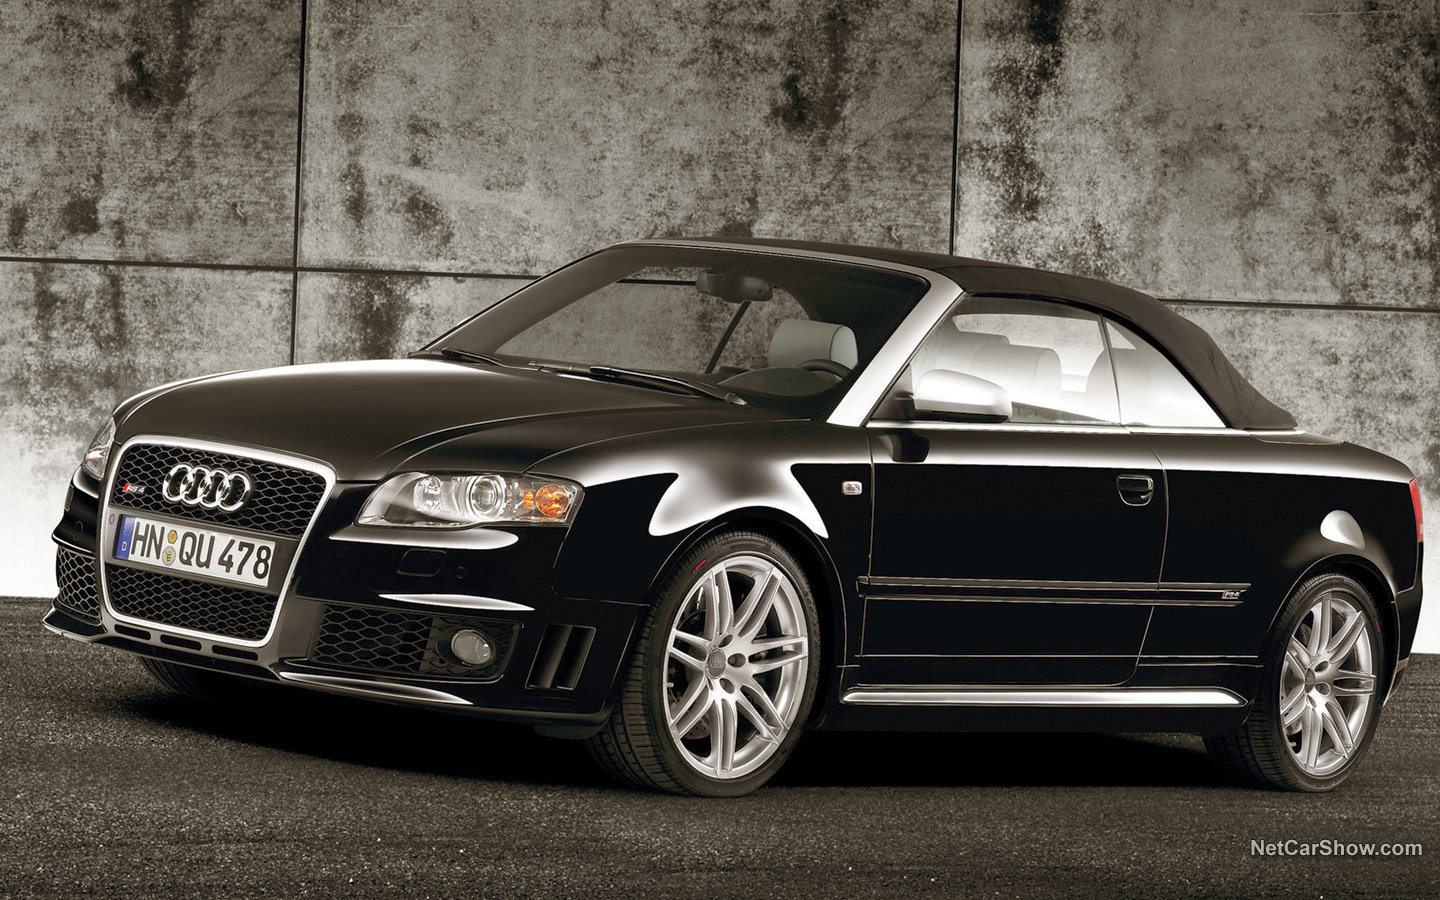 Audi A4 Cabriolet RS4 2006 b1ed29a9